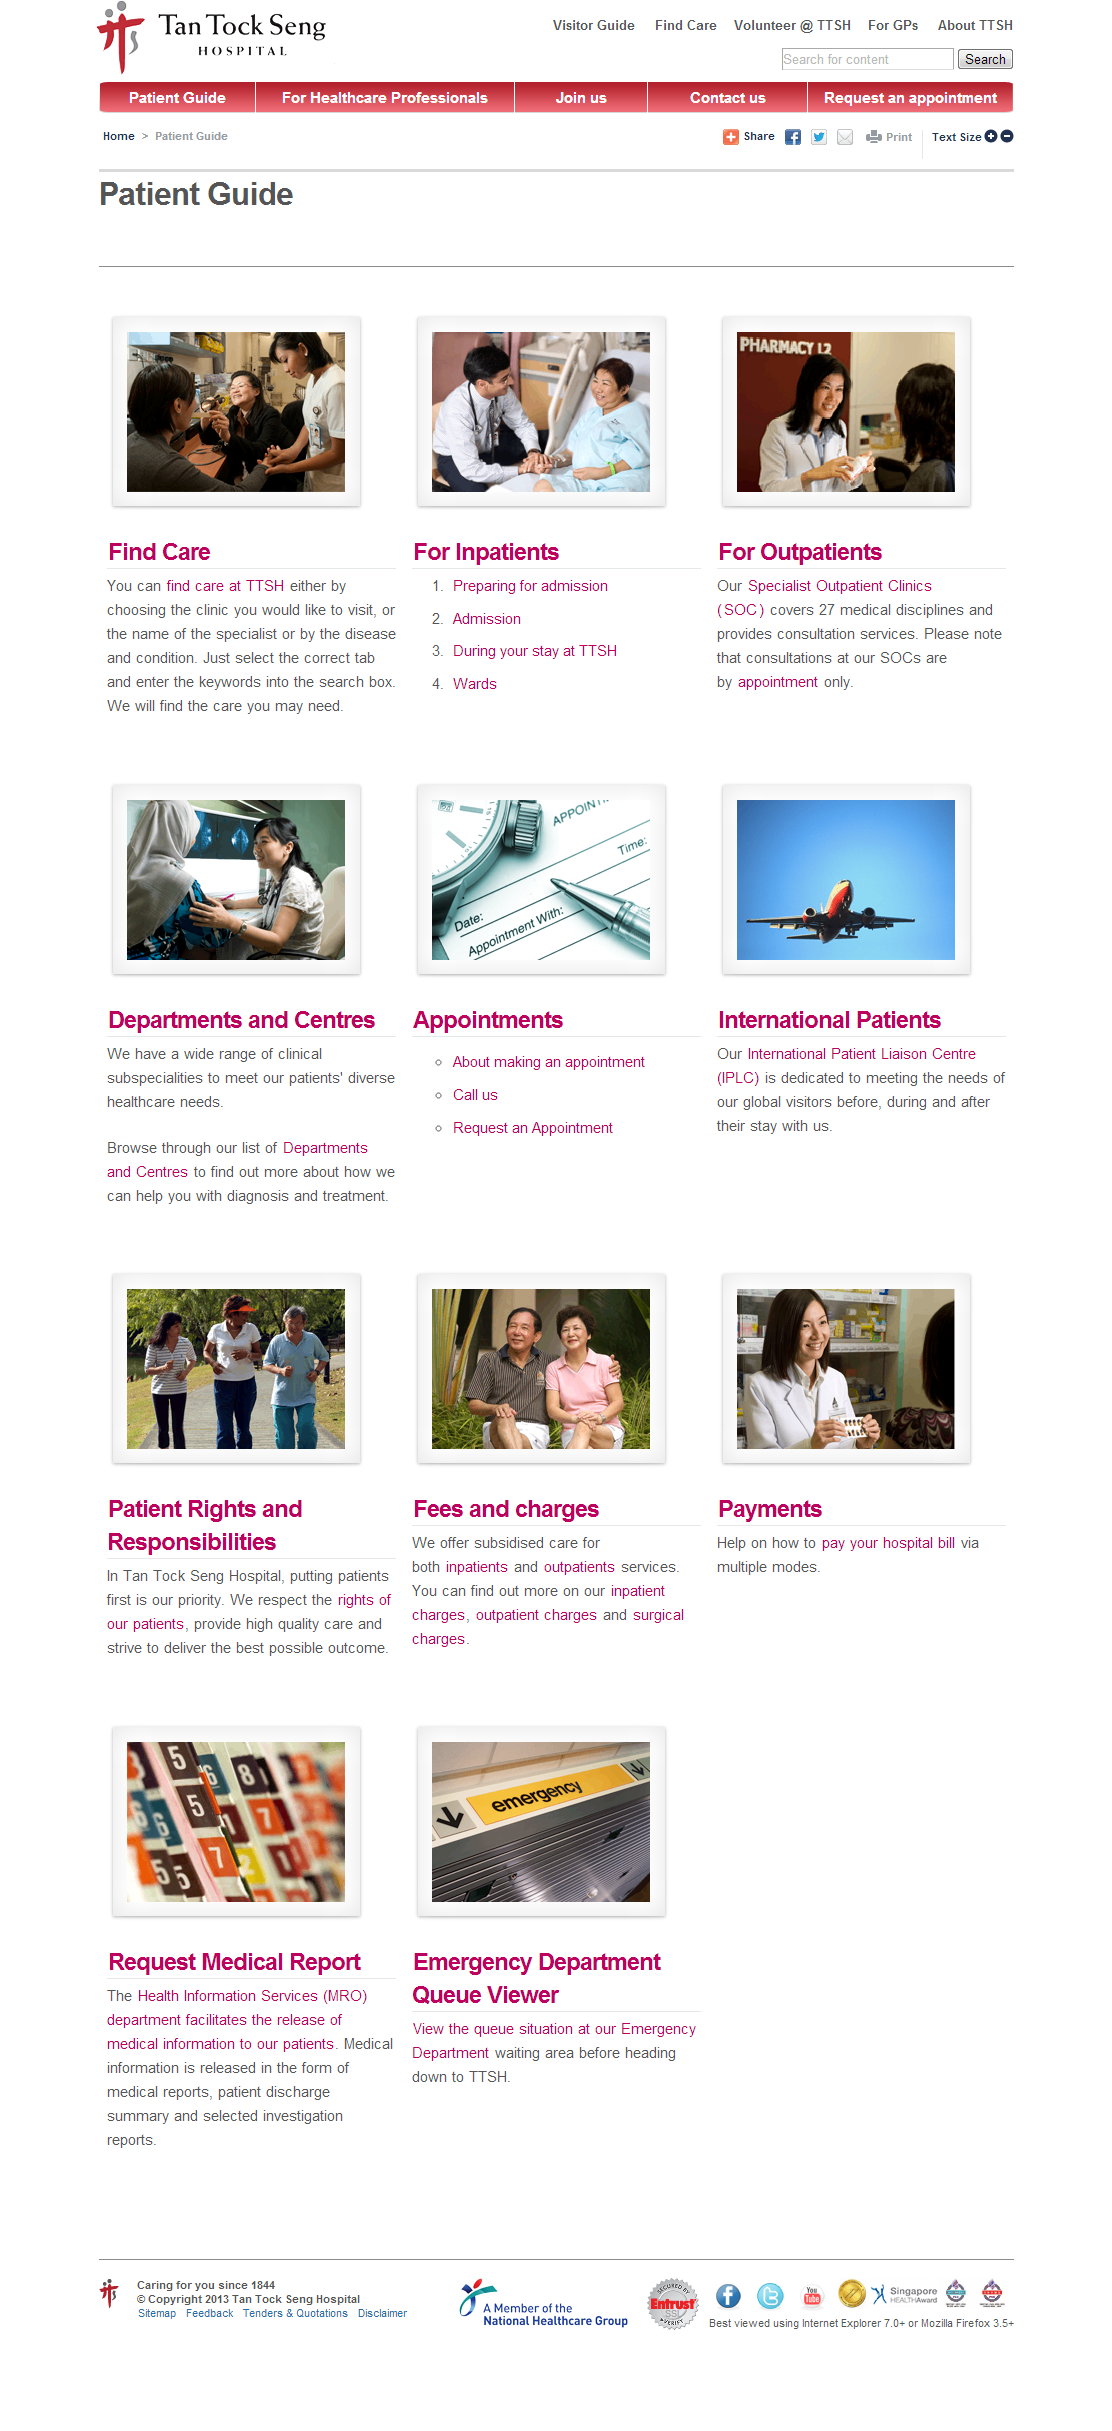 Tan Tock Seng Hospital Corporate Website Image 4